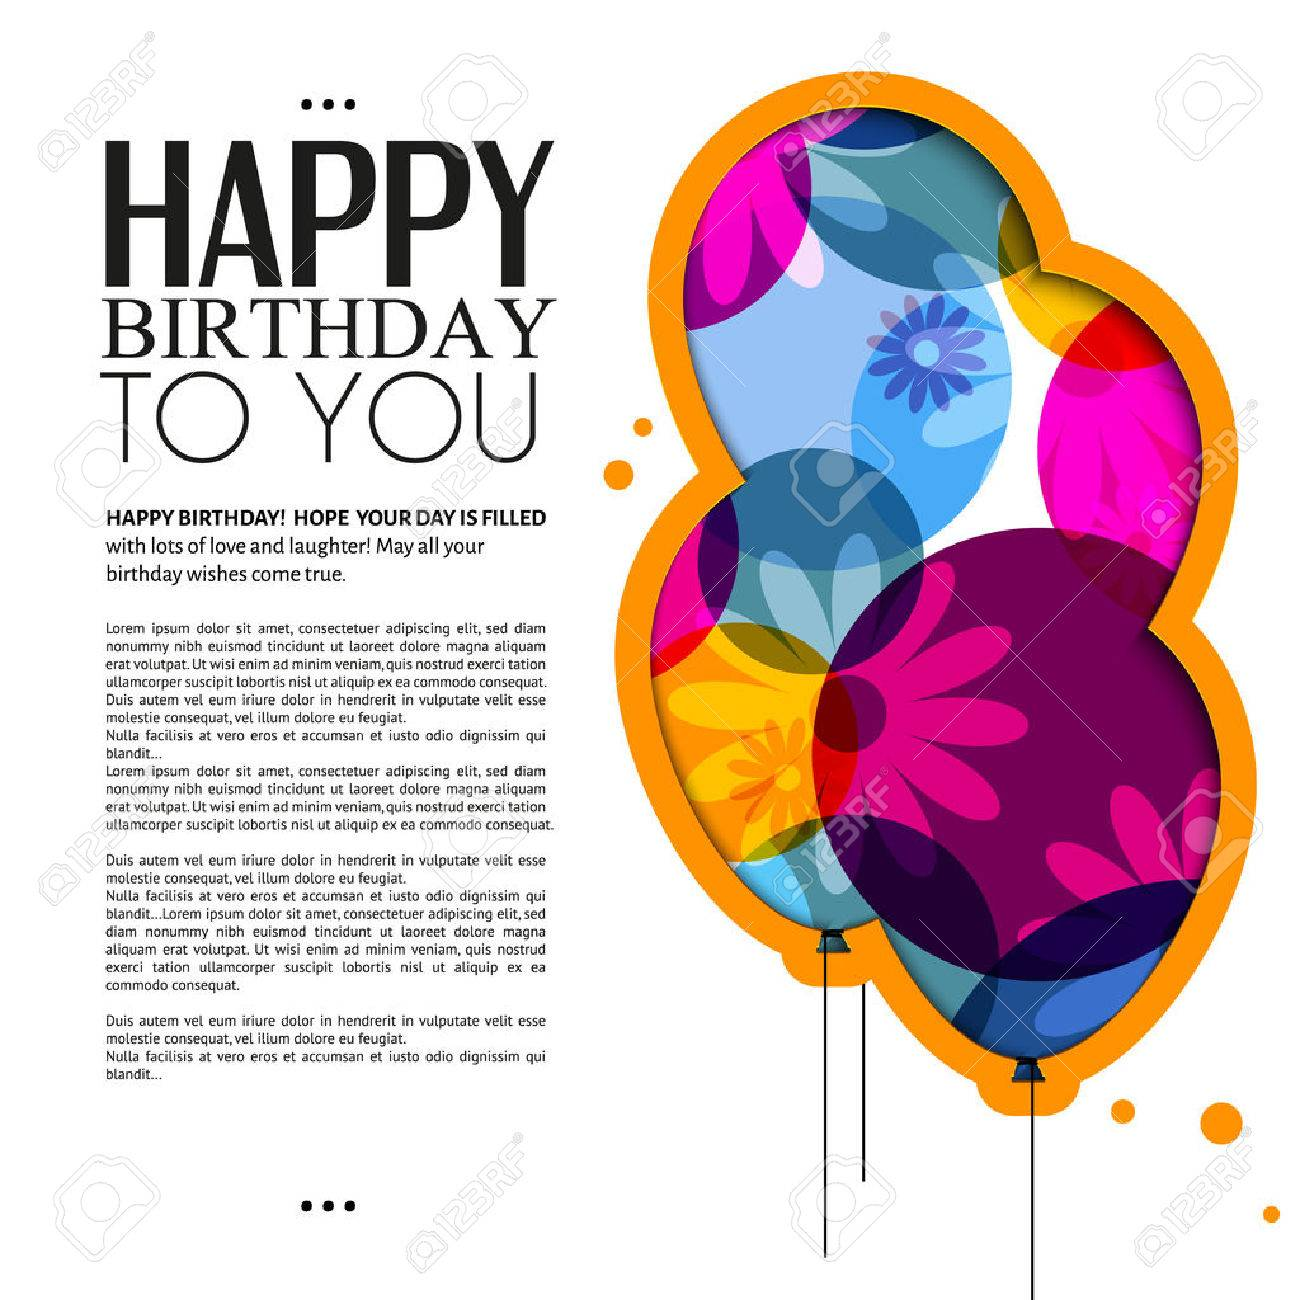 birthday card with color balloons, flowers and text - 30944781